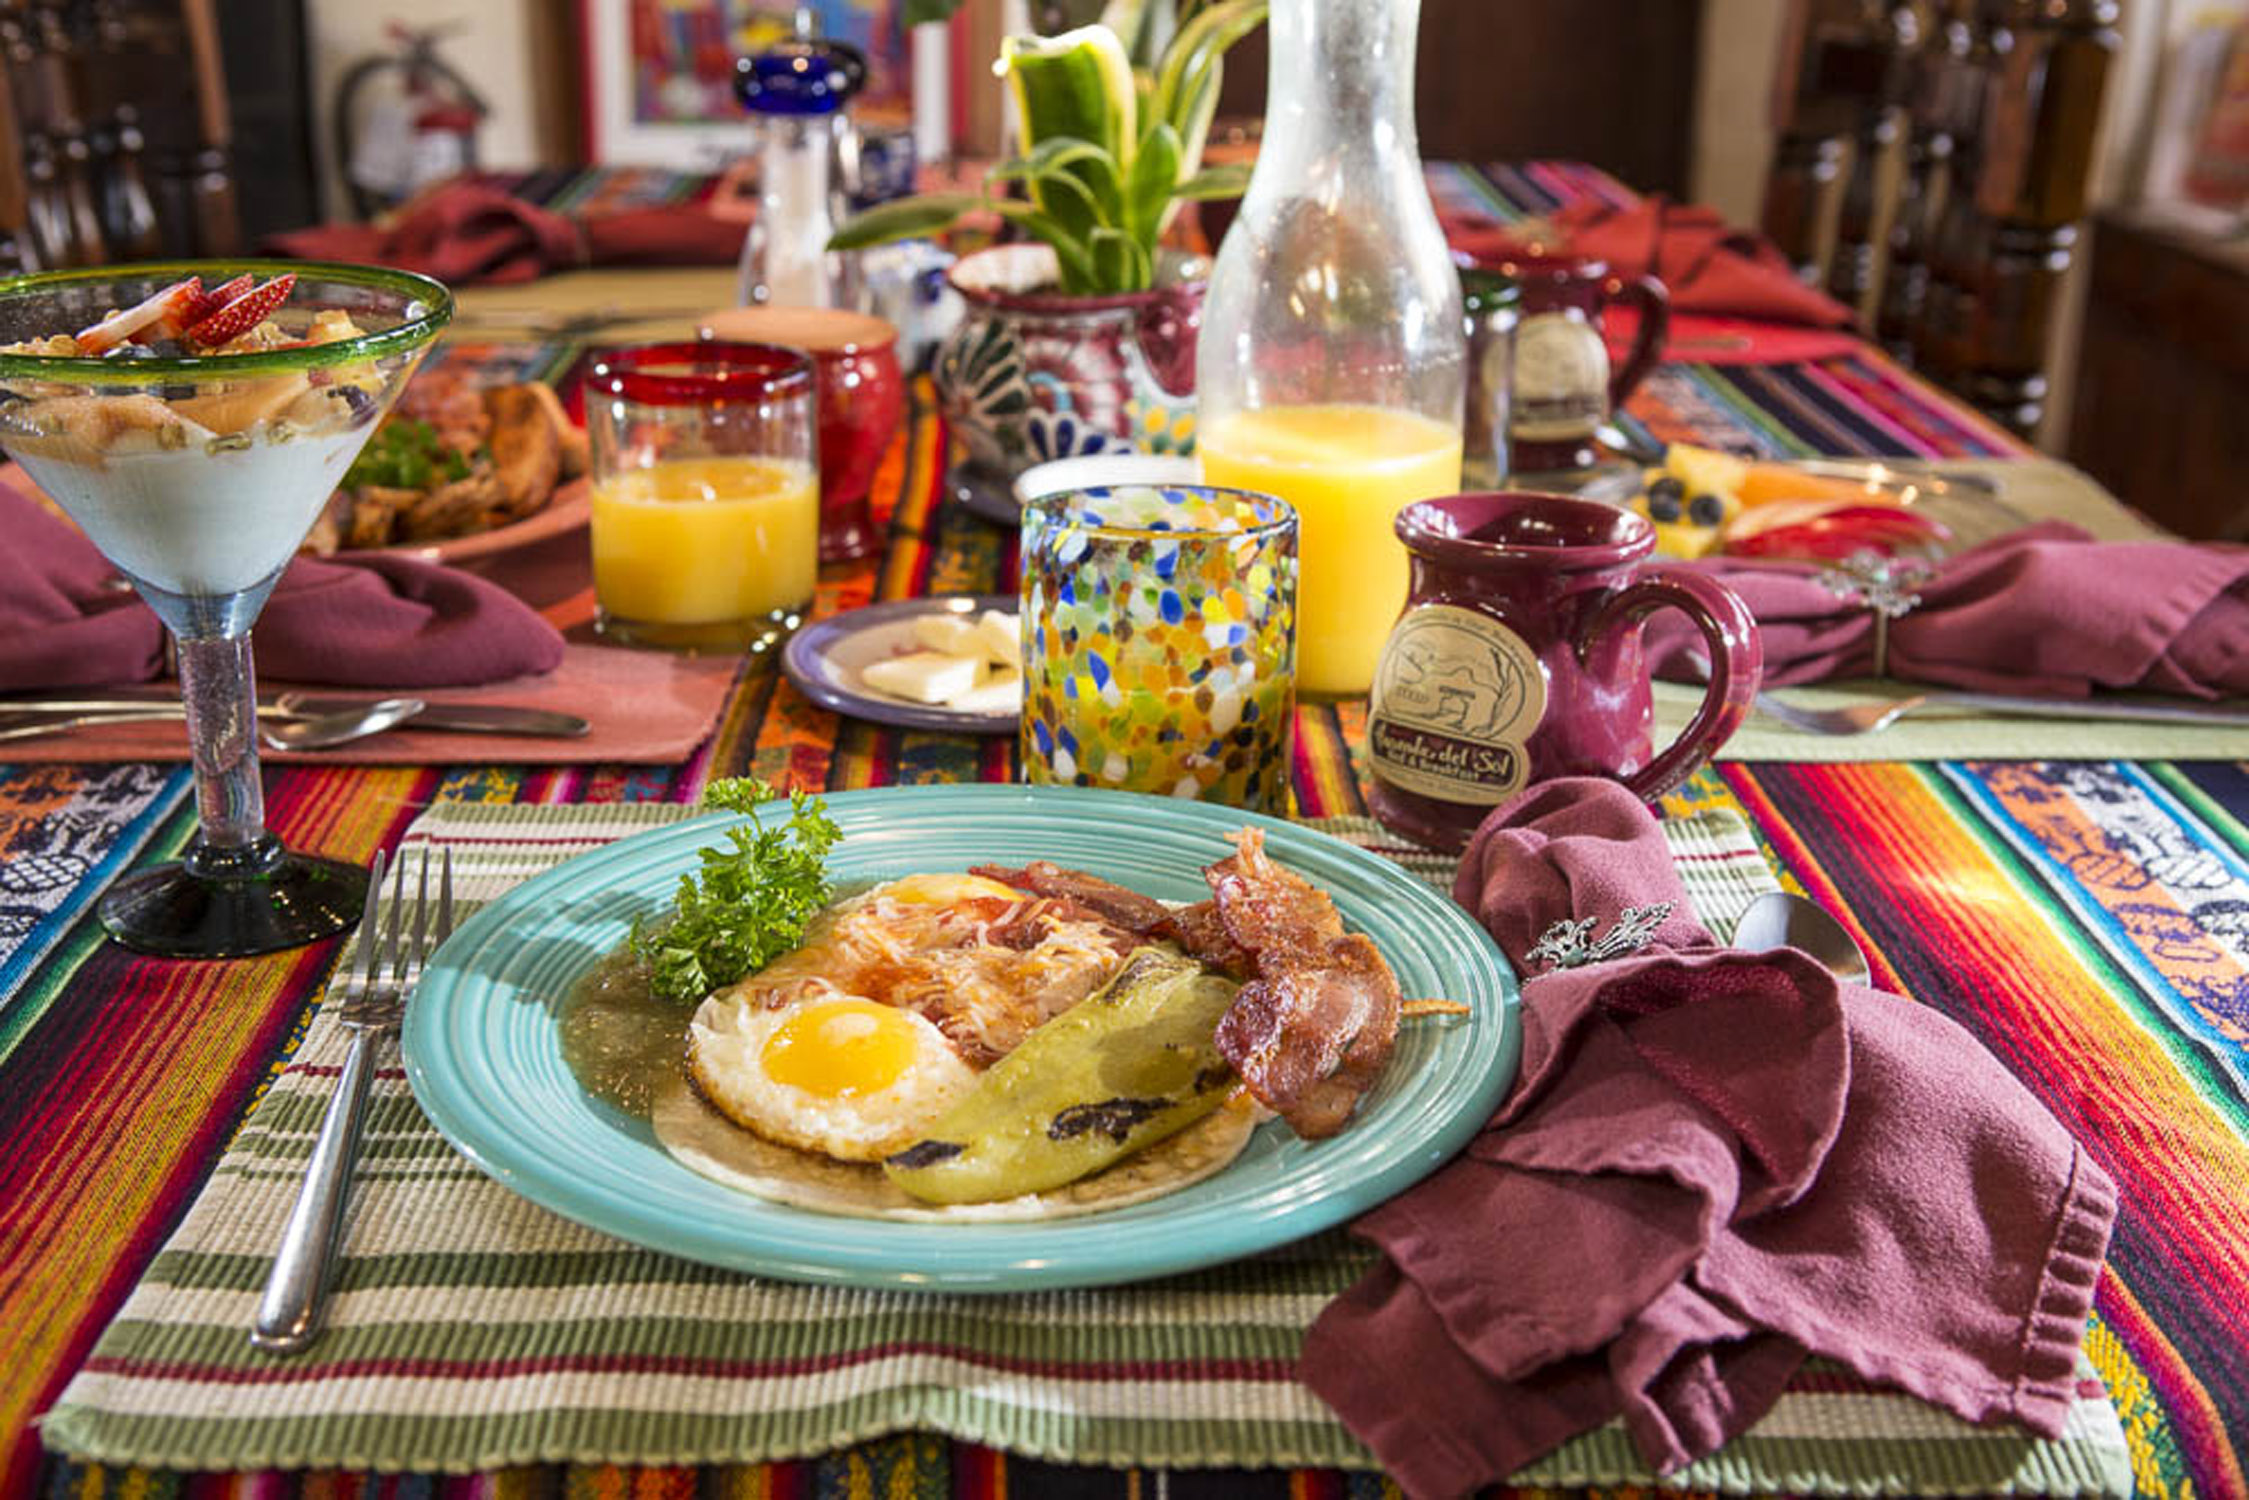 Breakfast at Hacienda del Sol in Taos, NM